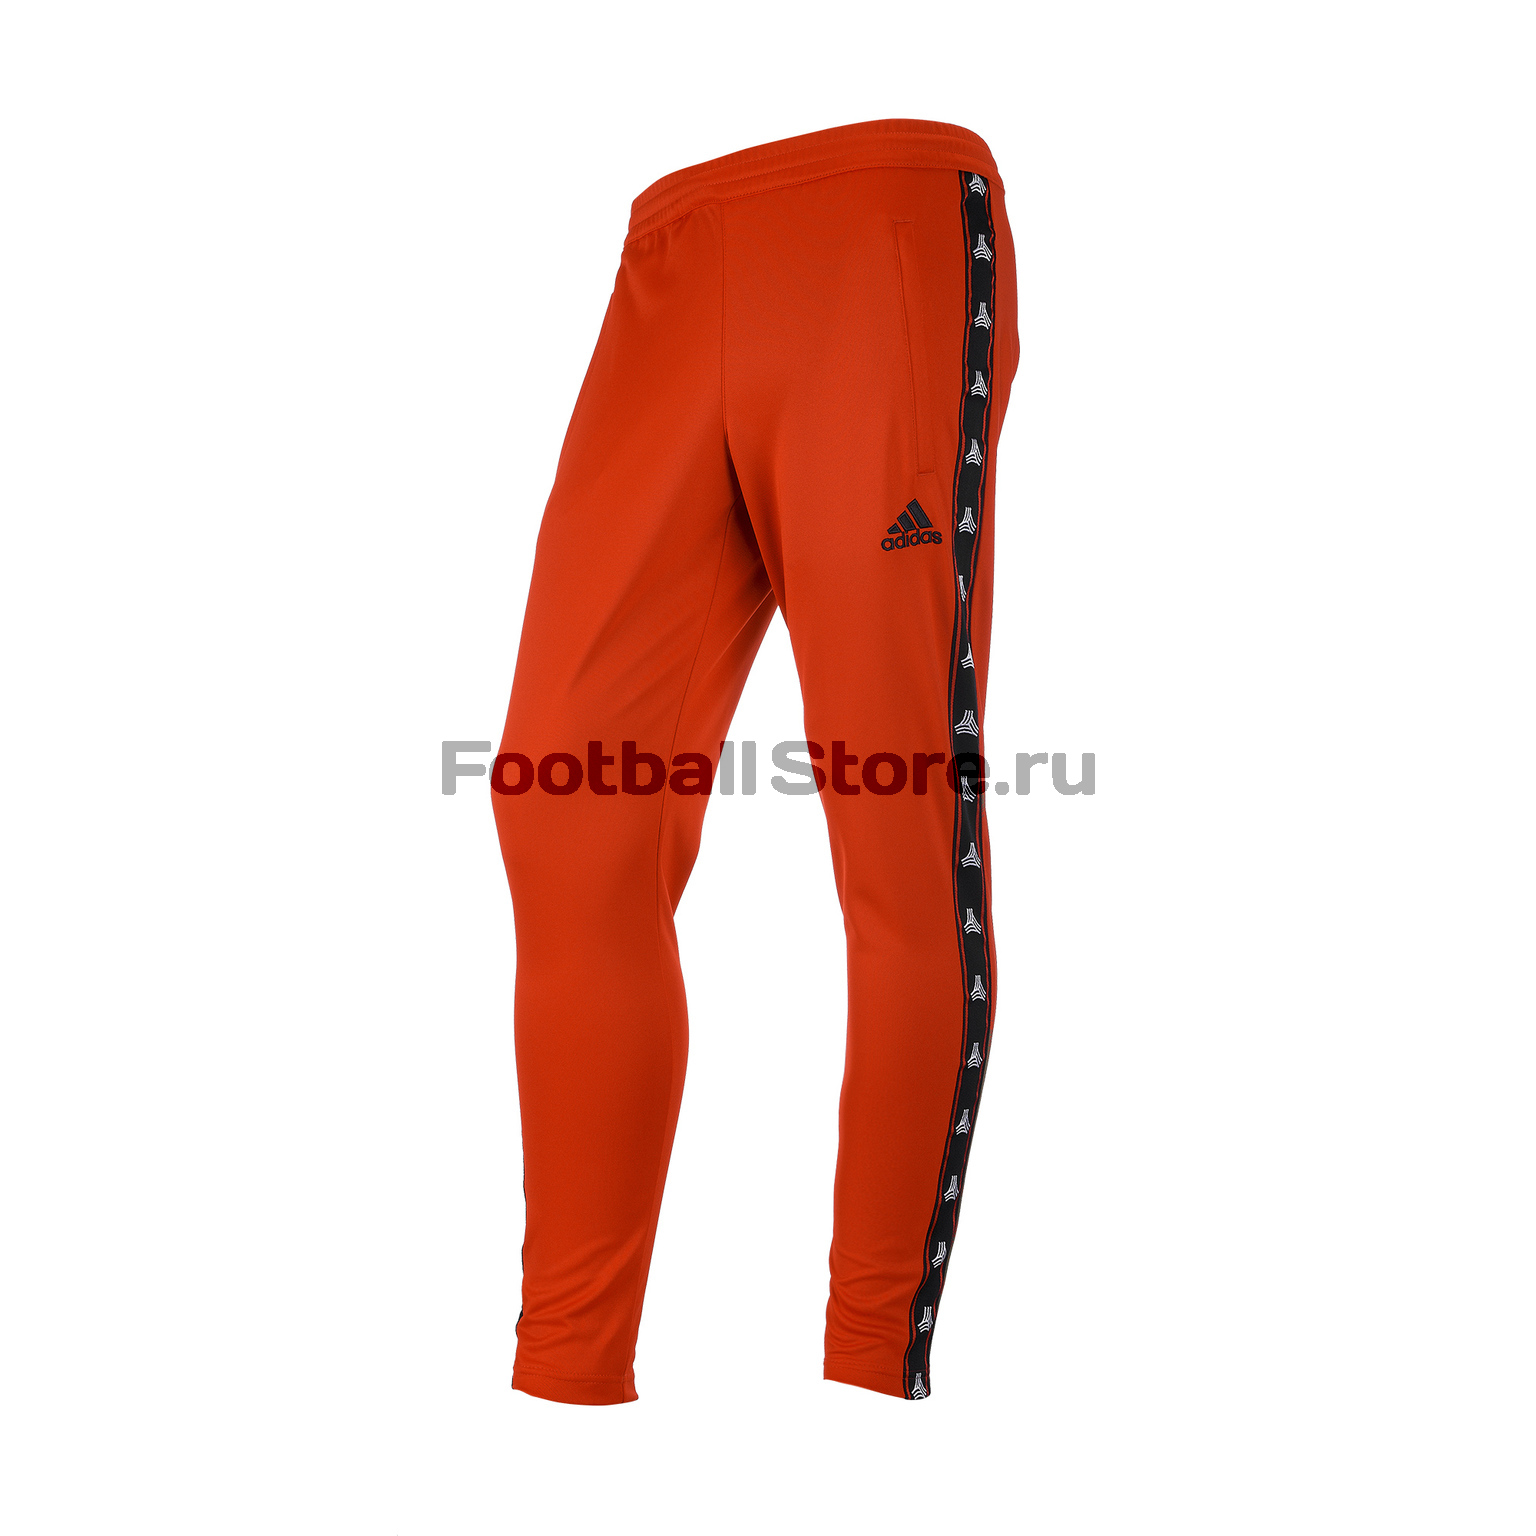 Брюки Adidas Tan Club Pant DW9363 брюки adidas tan gr dp2695